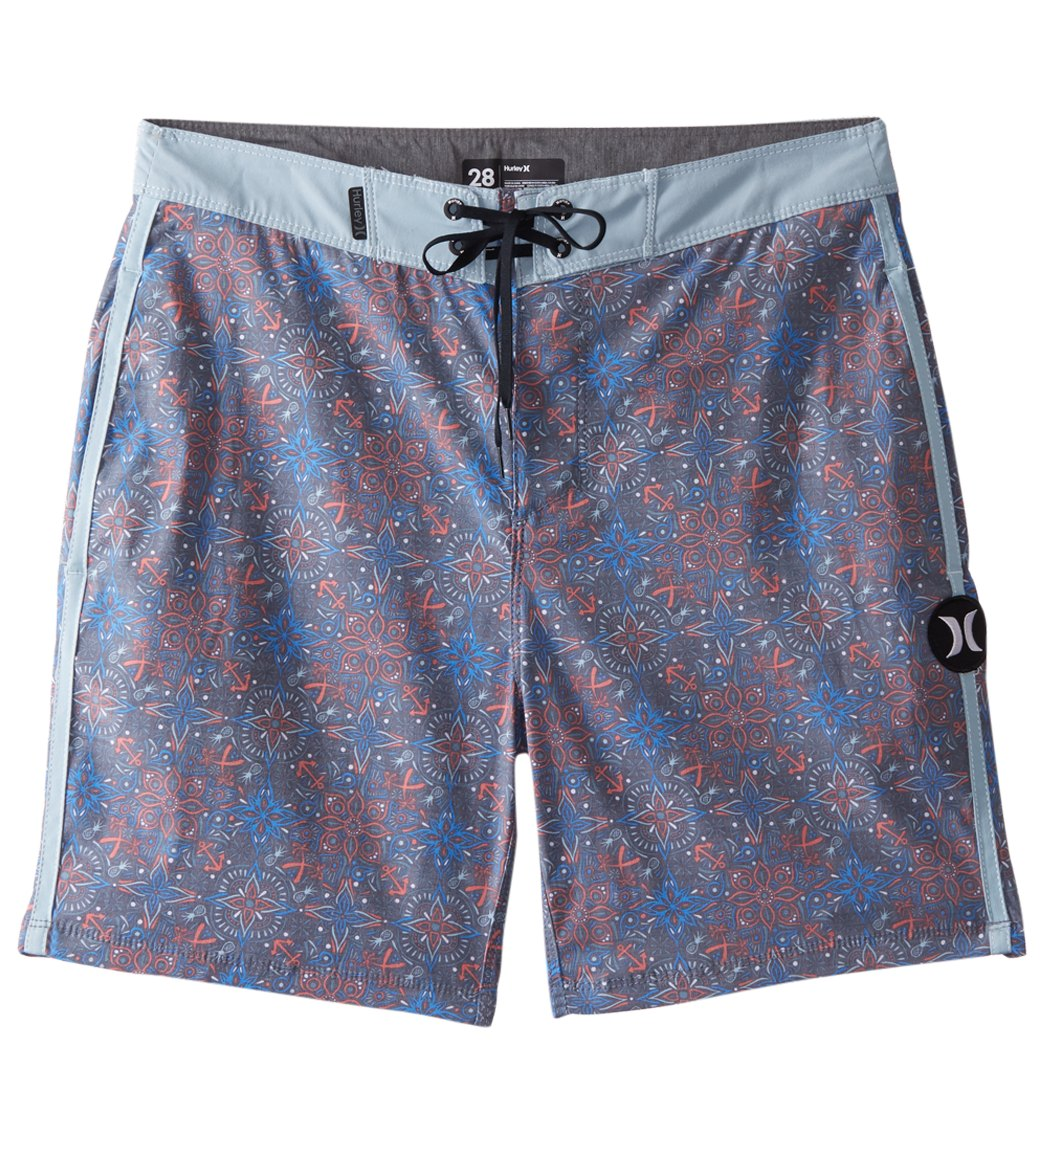 3d836510deff Hurley Men s Beachside San Miguel Boardshort at SwimOutlet.com - Free  Shipping